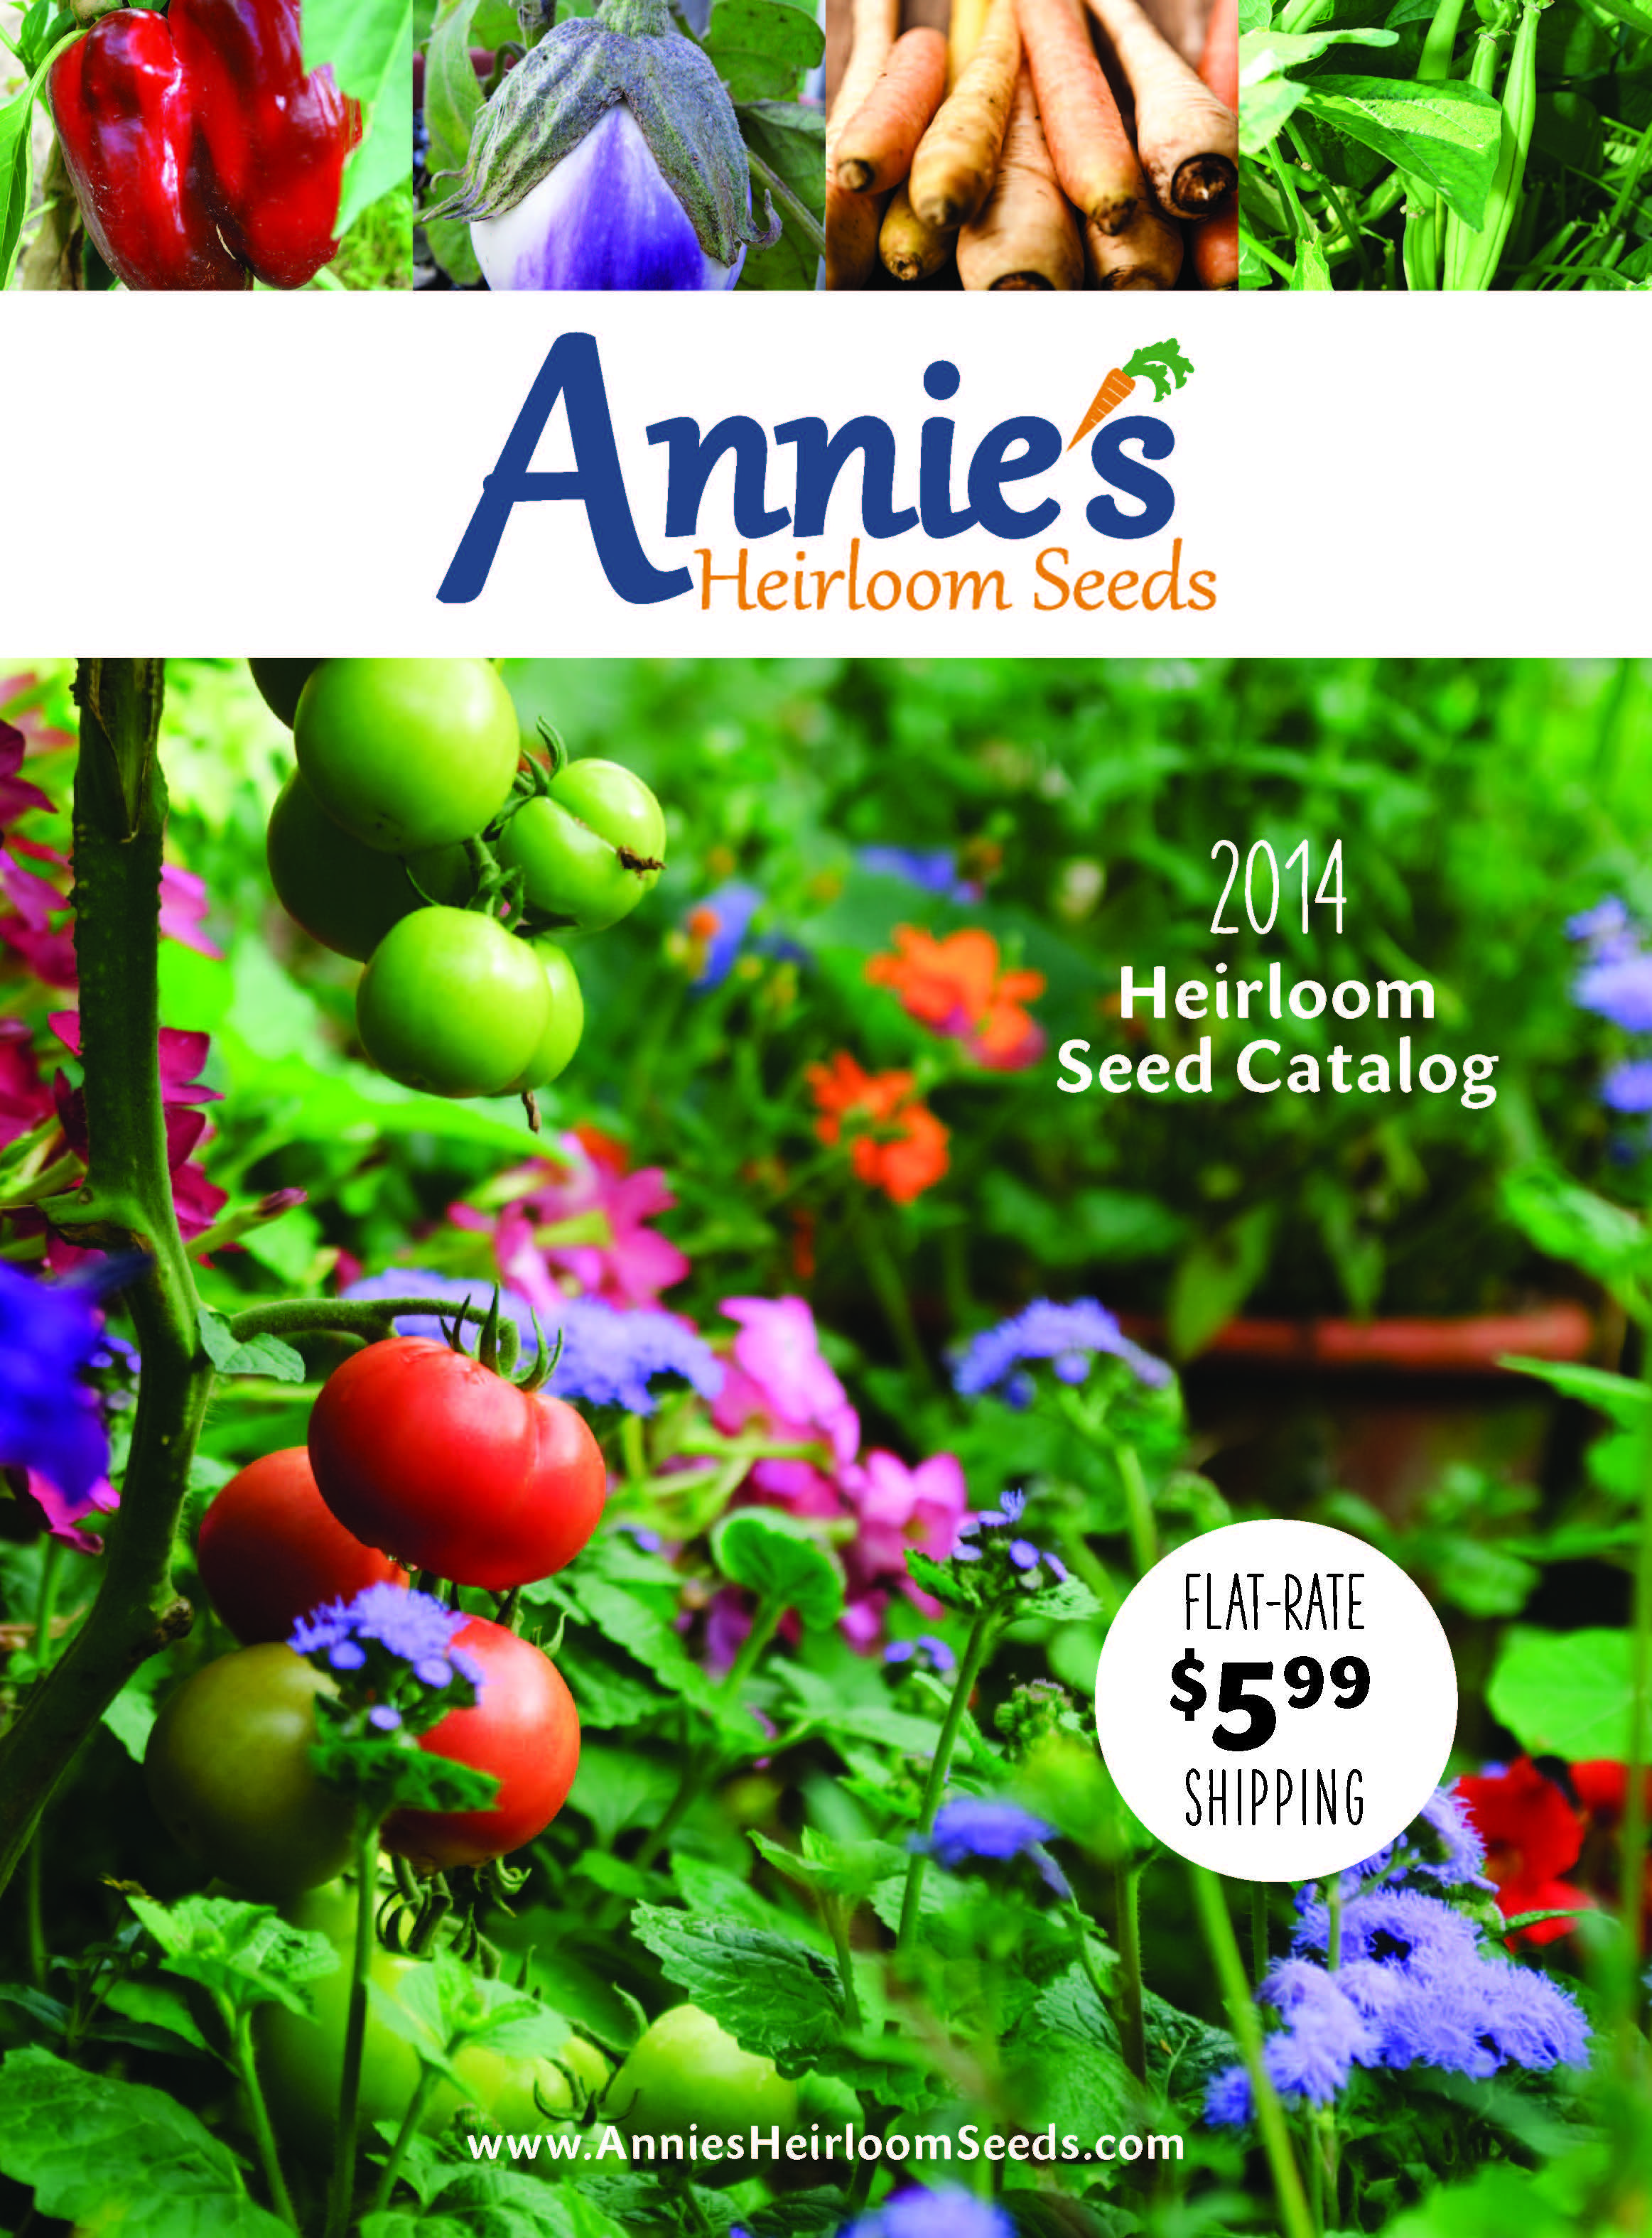 Organic heirloom seeds